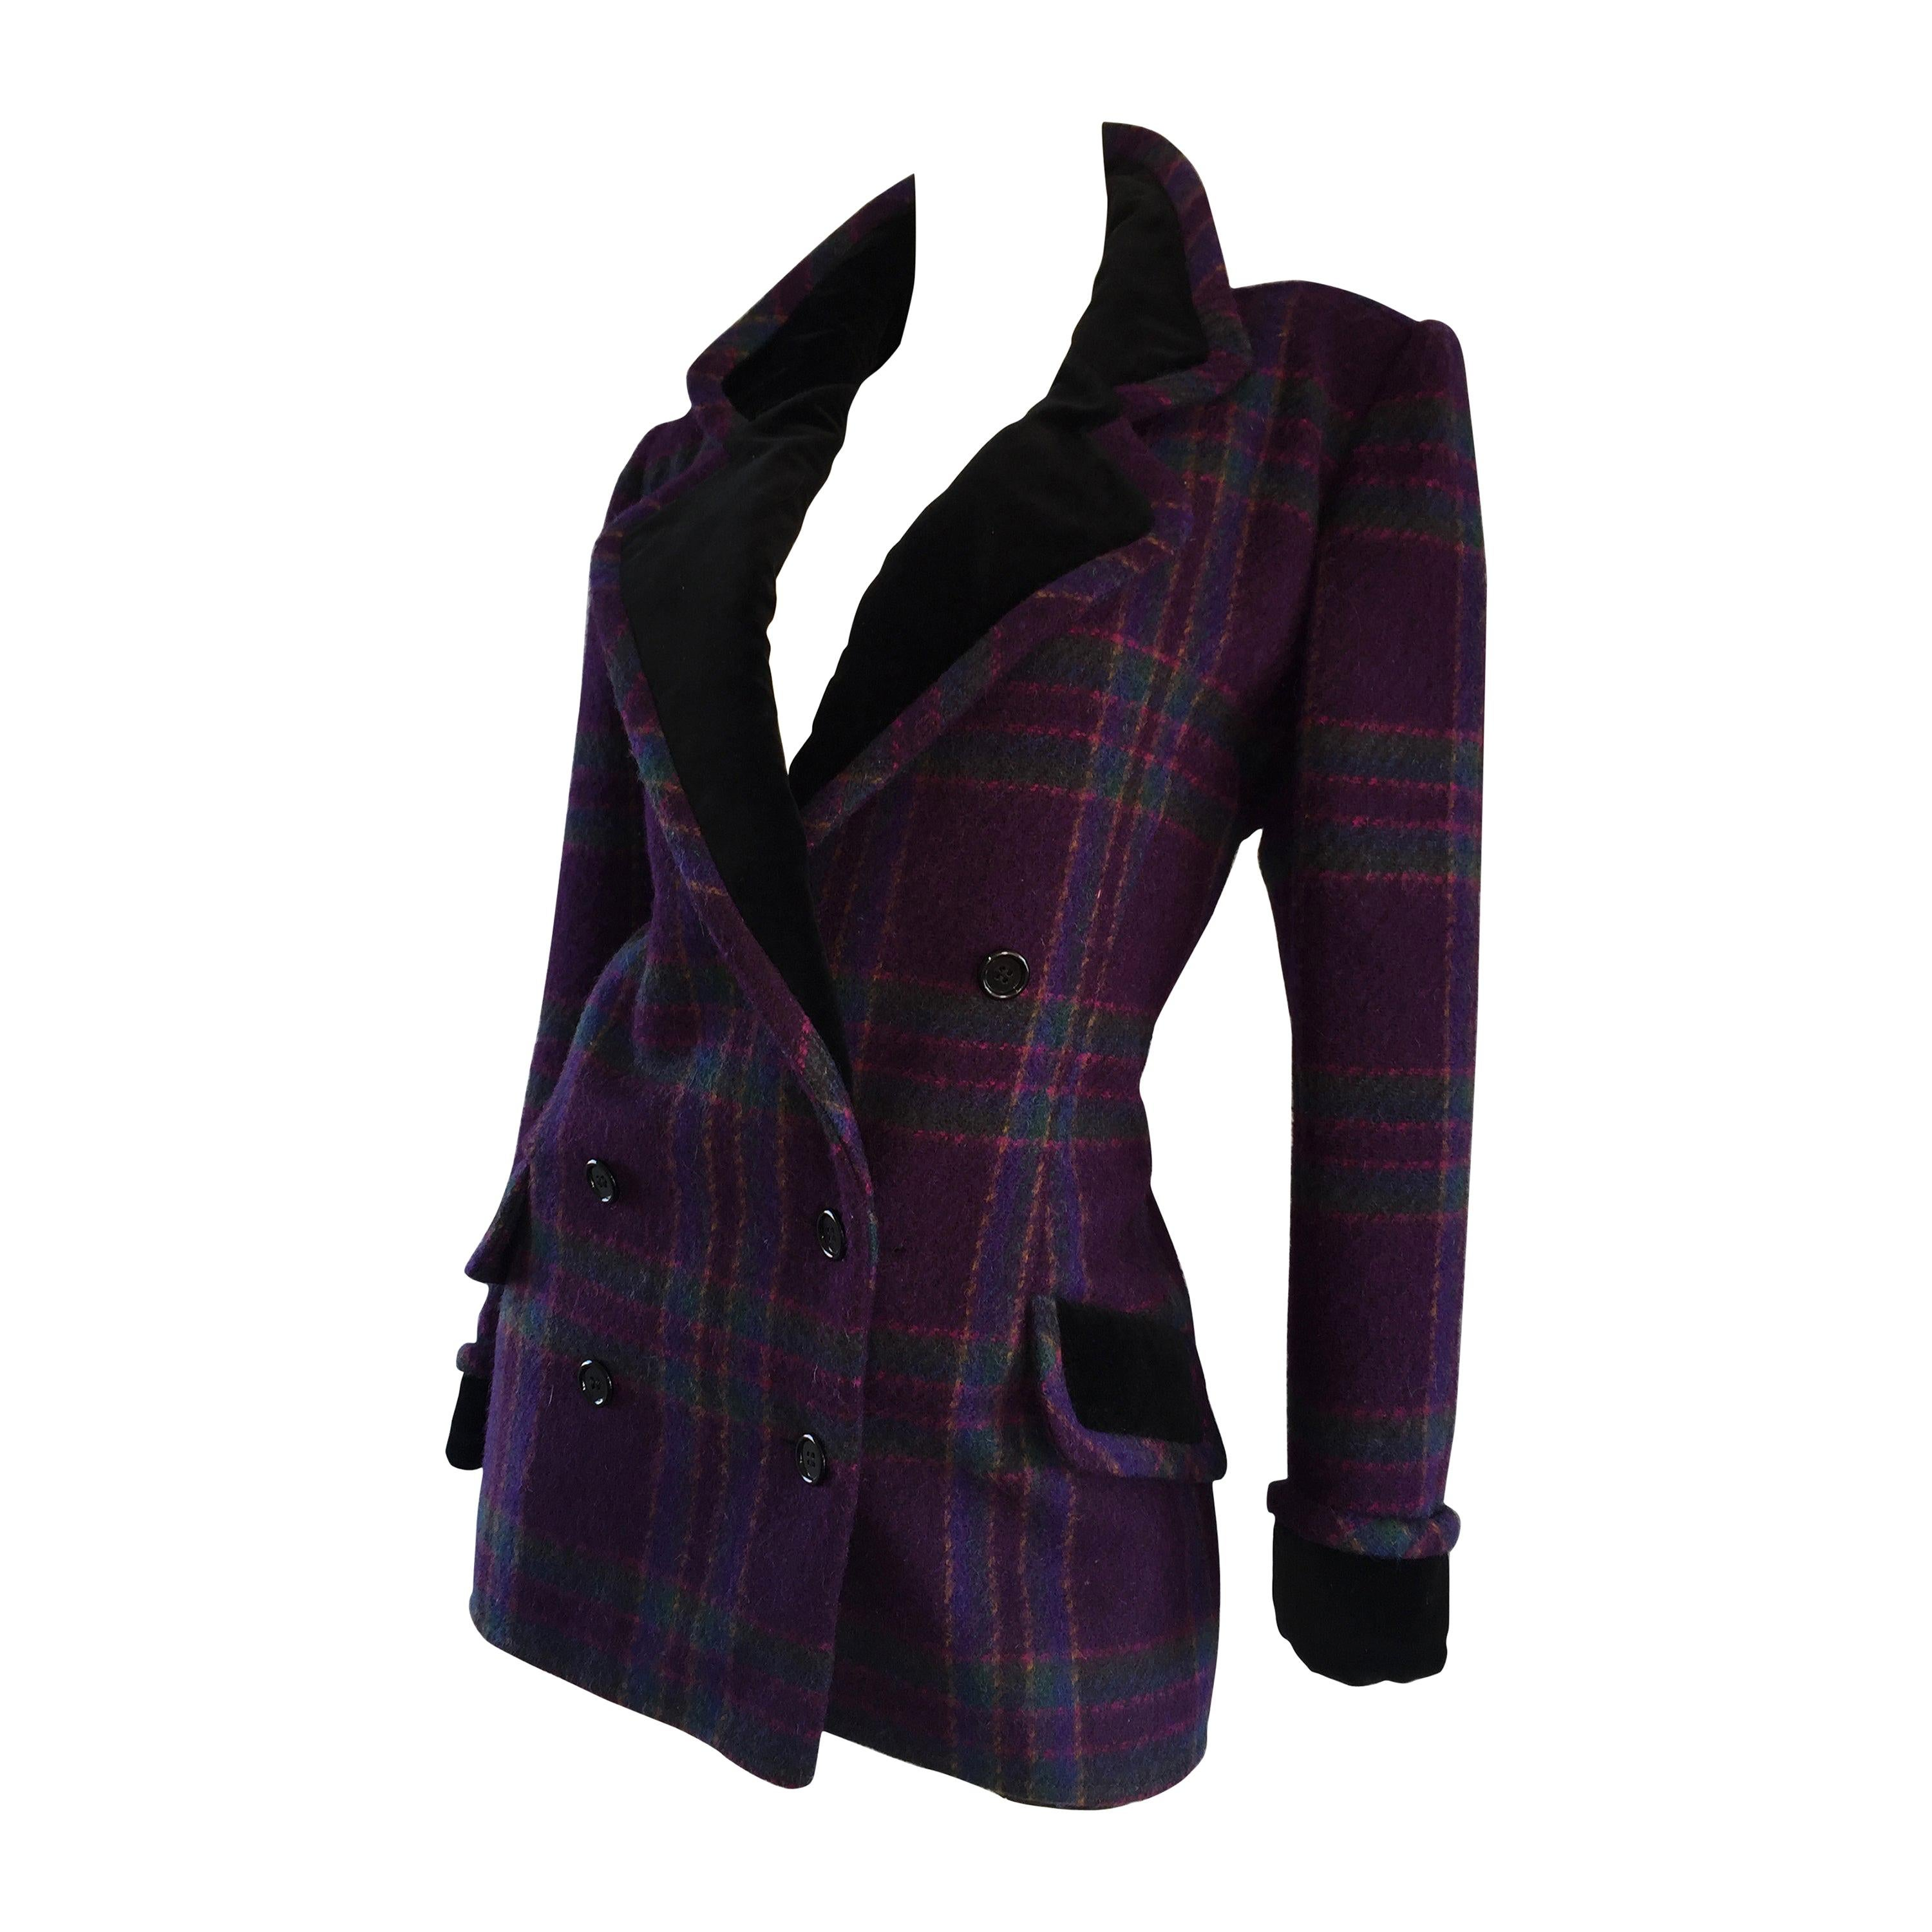 Vintage Emanuel Ungaro Purple, Green, Fuchsia Plaid Wool & Velvet Jacket Blazer